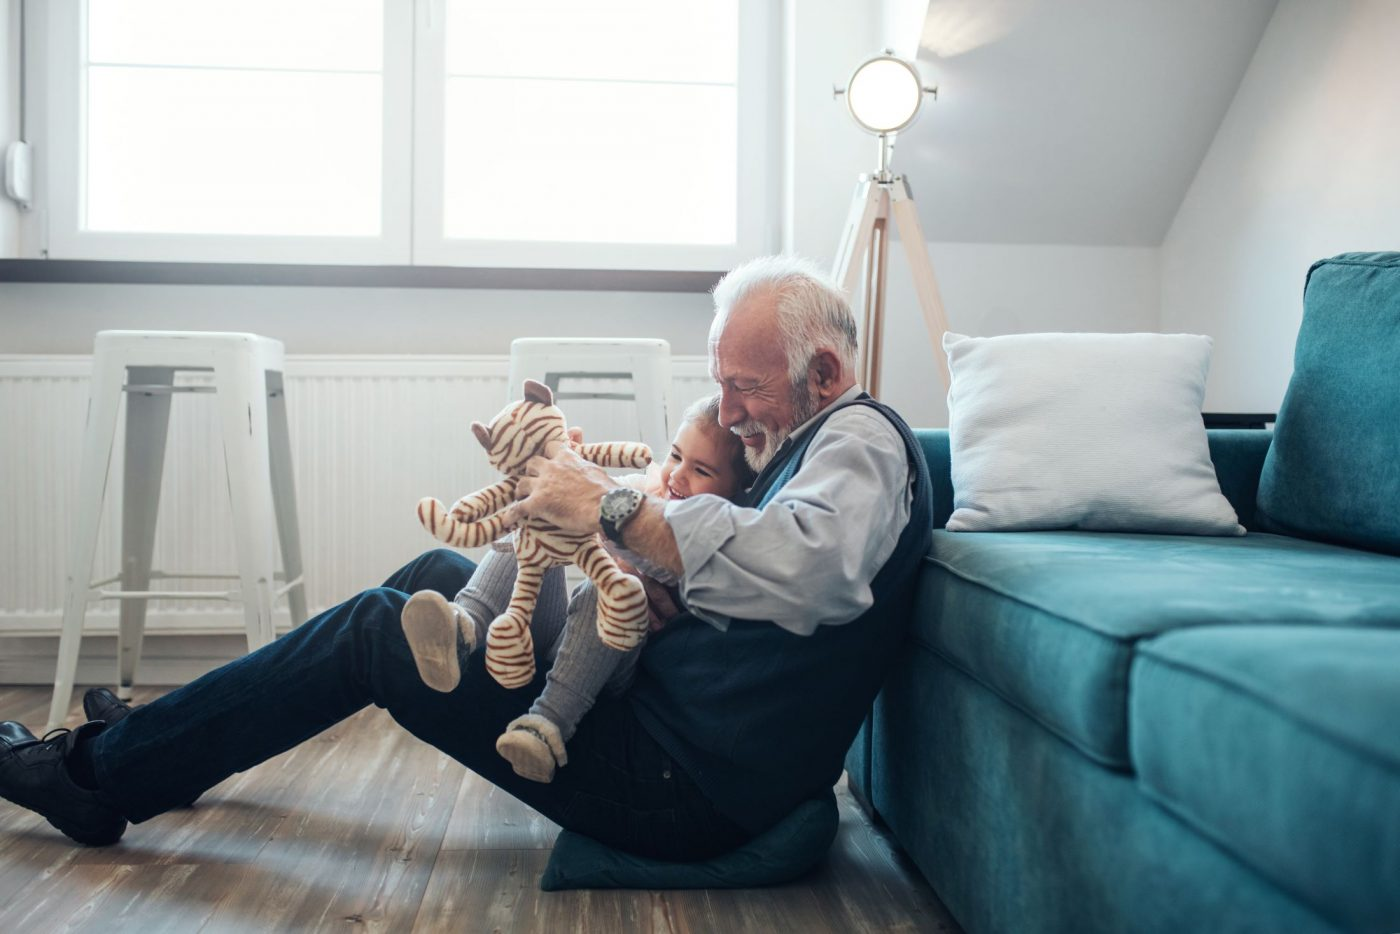 Grampa and toddler playign with a toy tiger on the floor